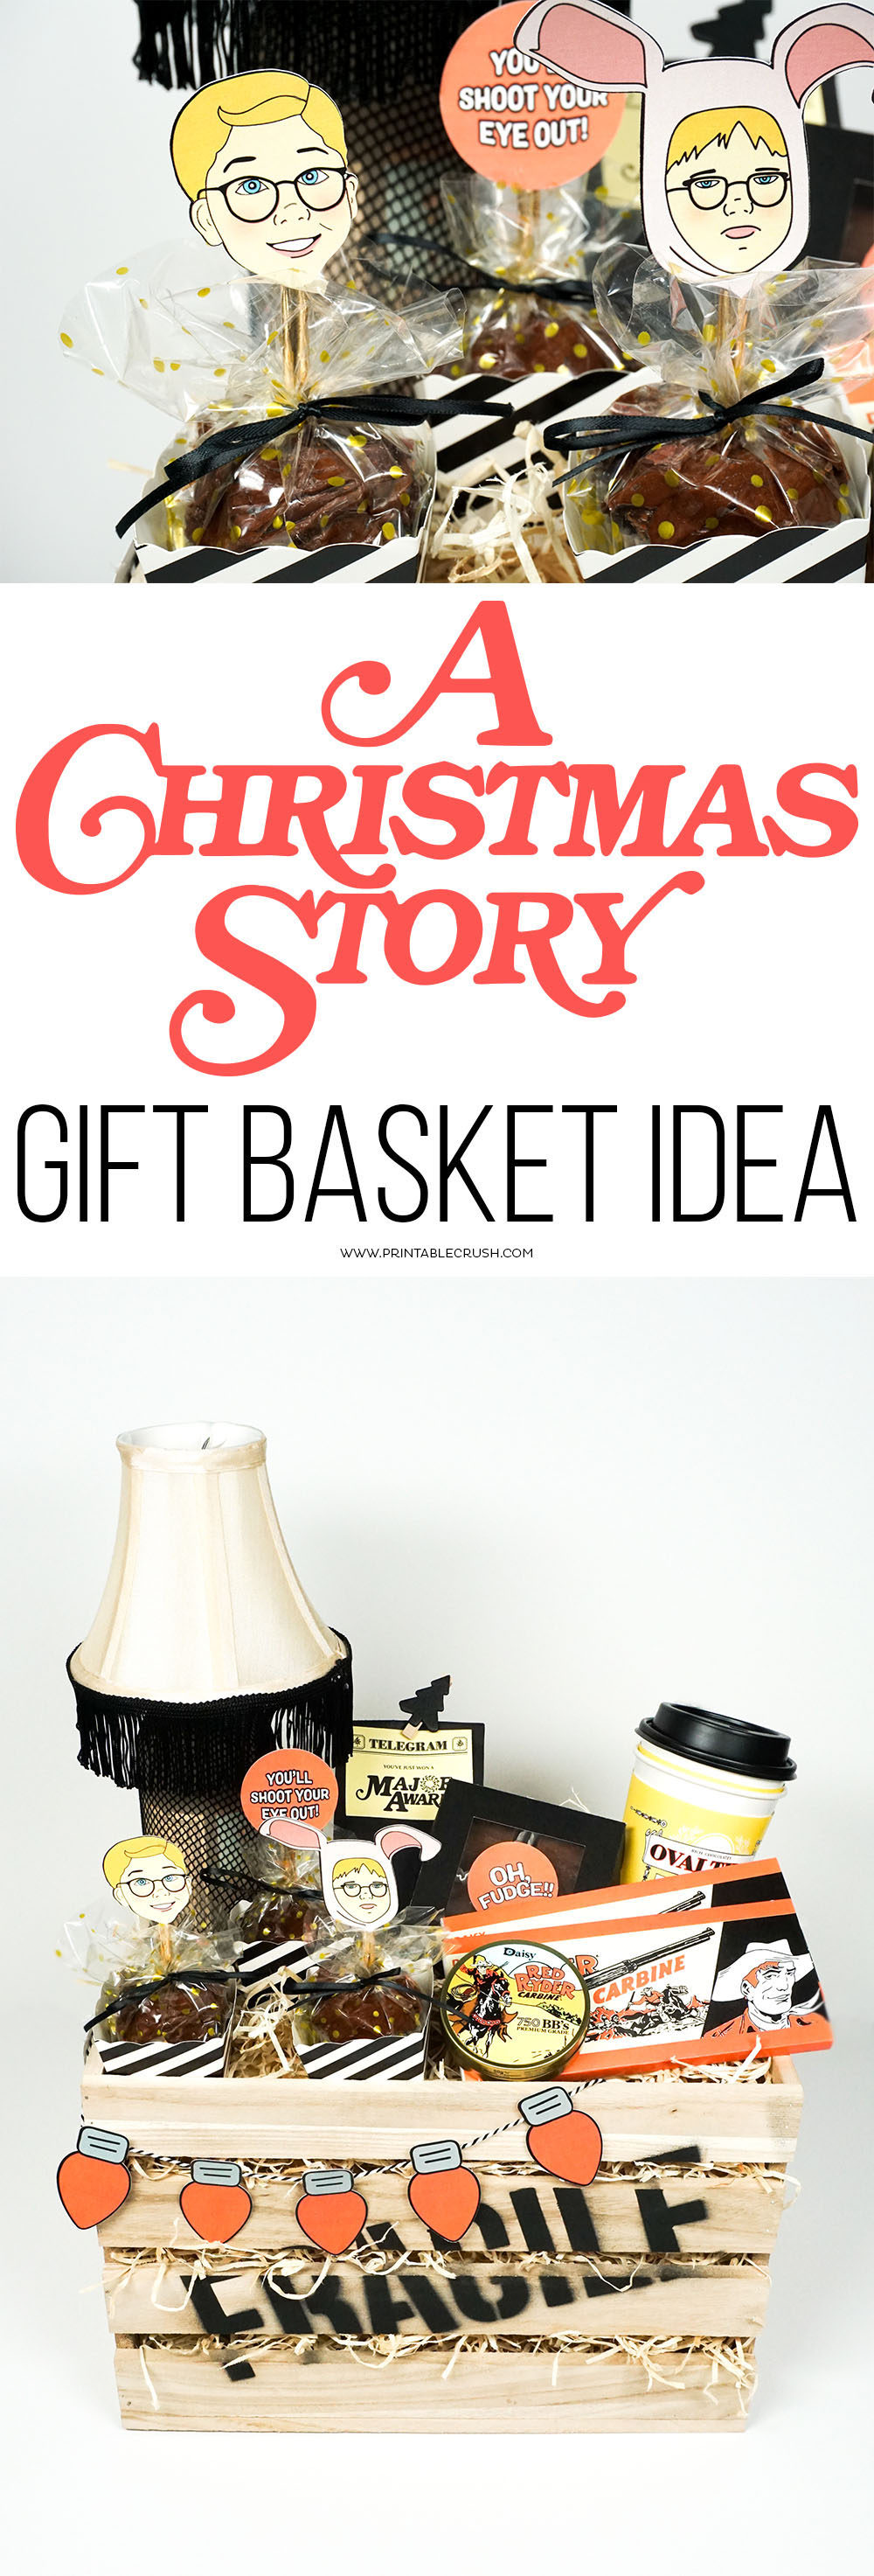 """Have a friend that's a Christmas movie fan? They'll love this A Christmas Story Gift Basket Idea! It's complete with a leg lamp drink, Red Ryder chocolate bars and """"BB's"""", and so much more!"""